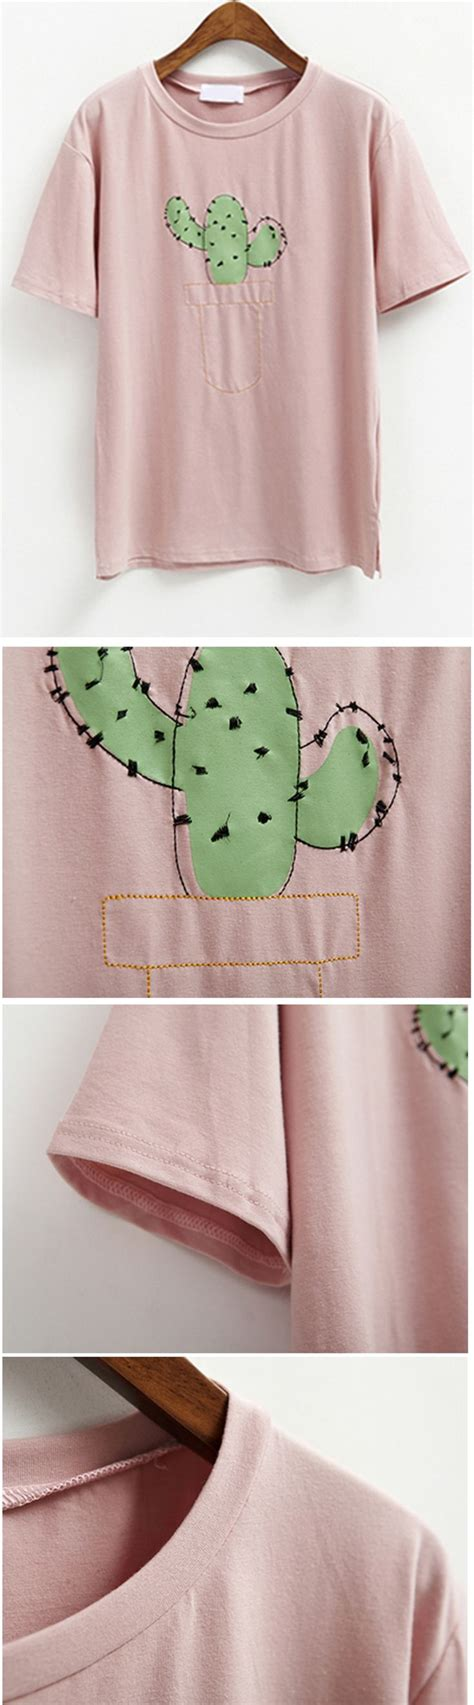 cute t shirt pattern cute print cactus stylish cactus pattern short sleeve